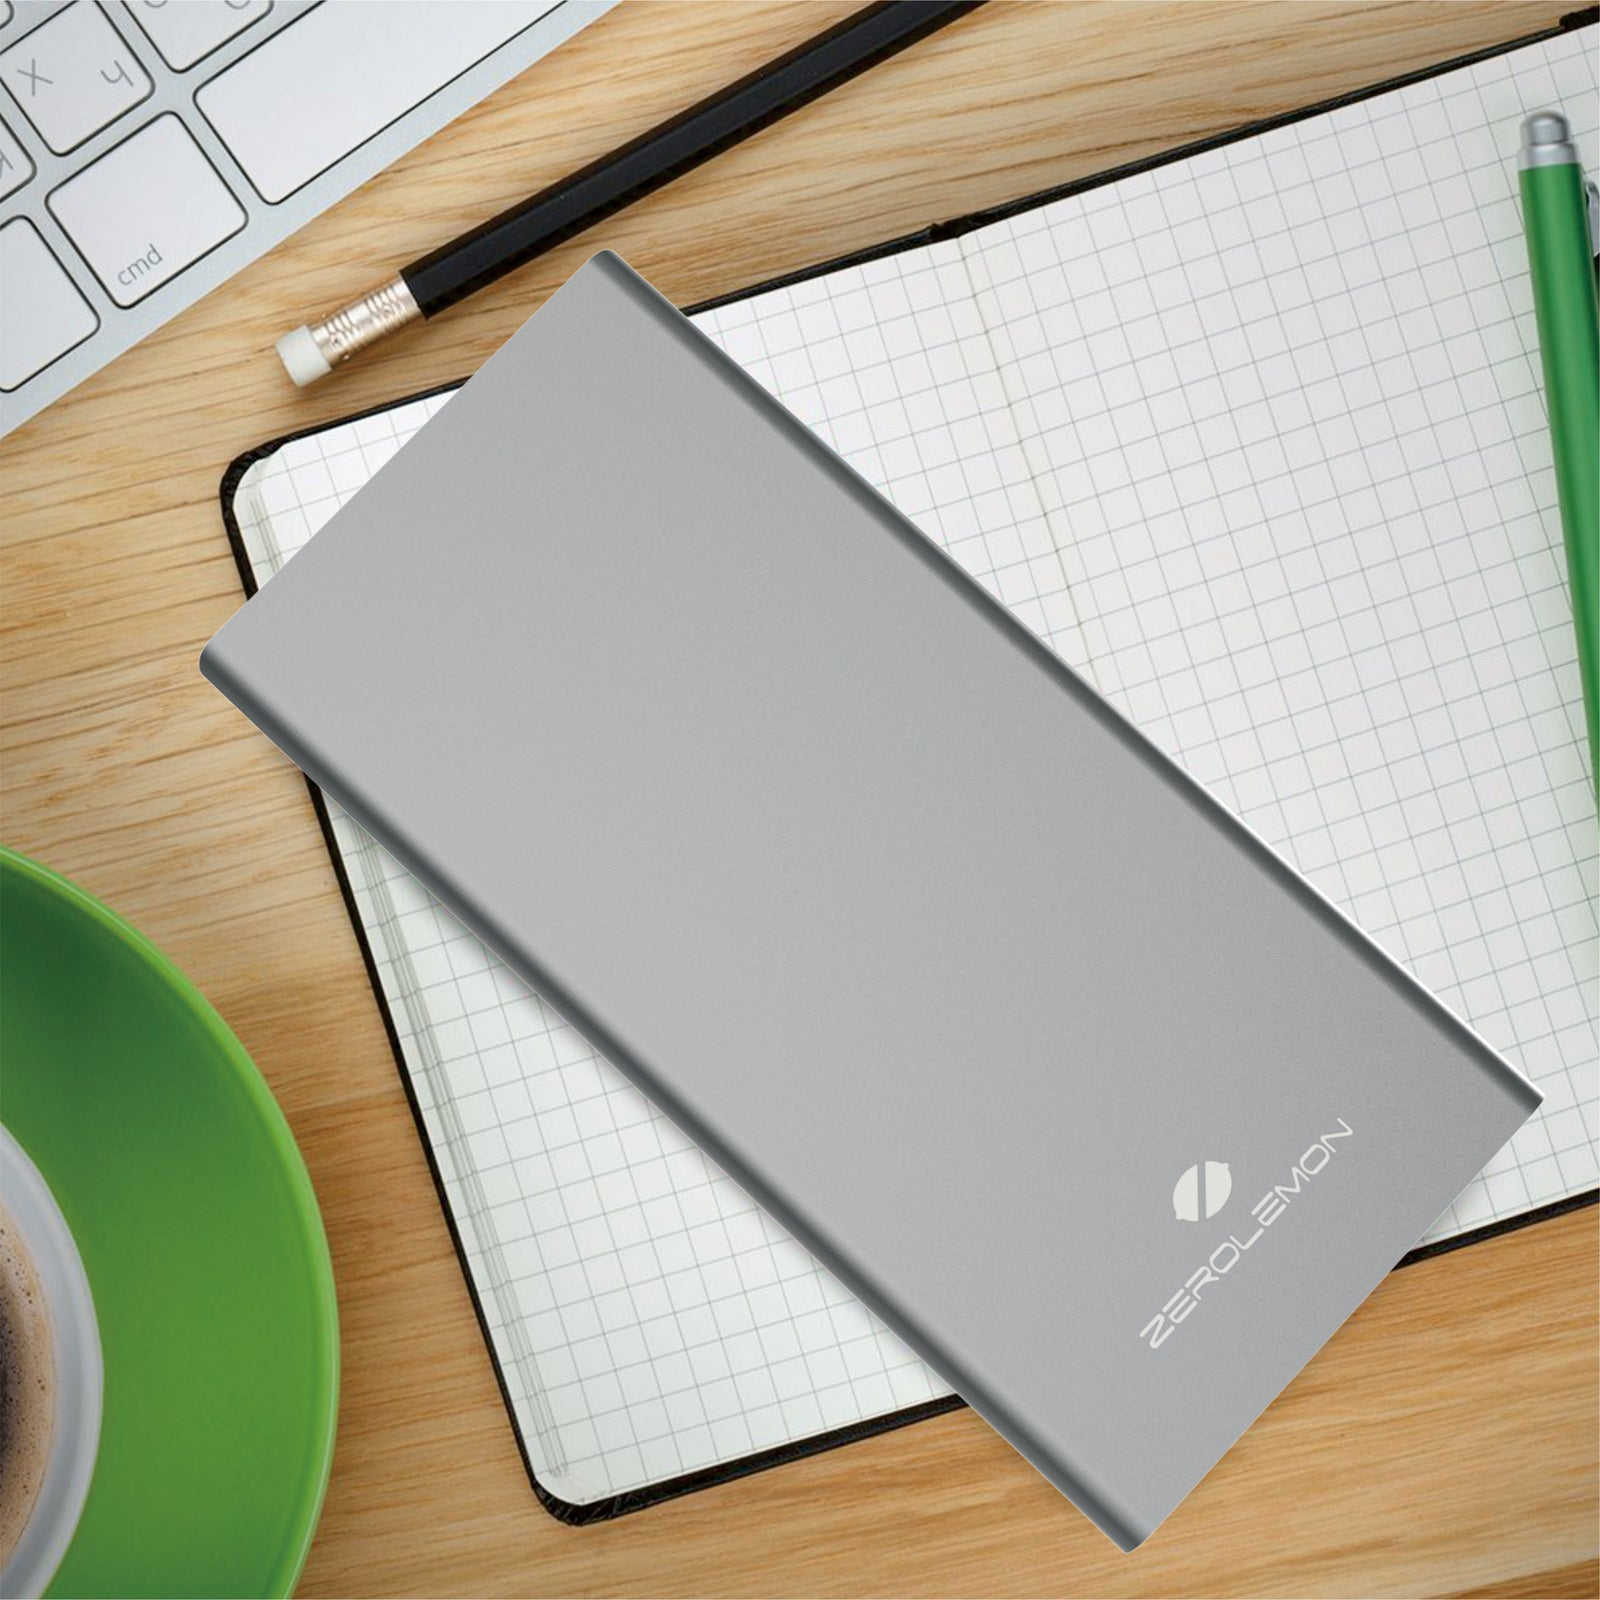 Power Bank 15200mAh Fast Charger - Gray  [Shipping to Japan Only]